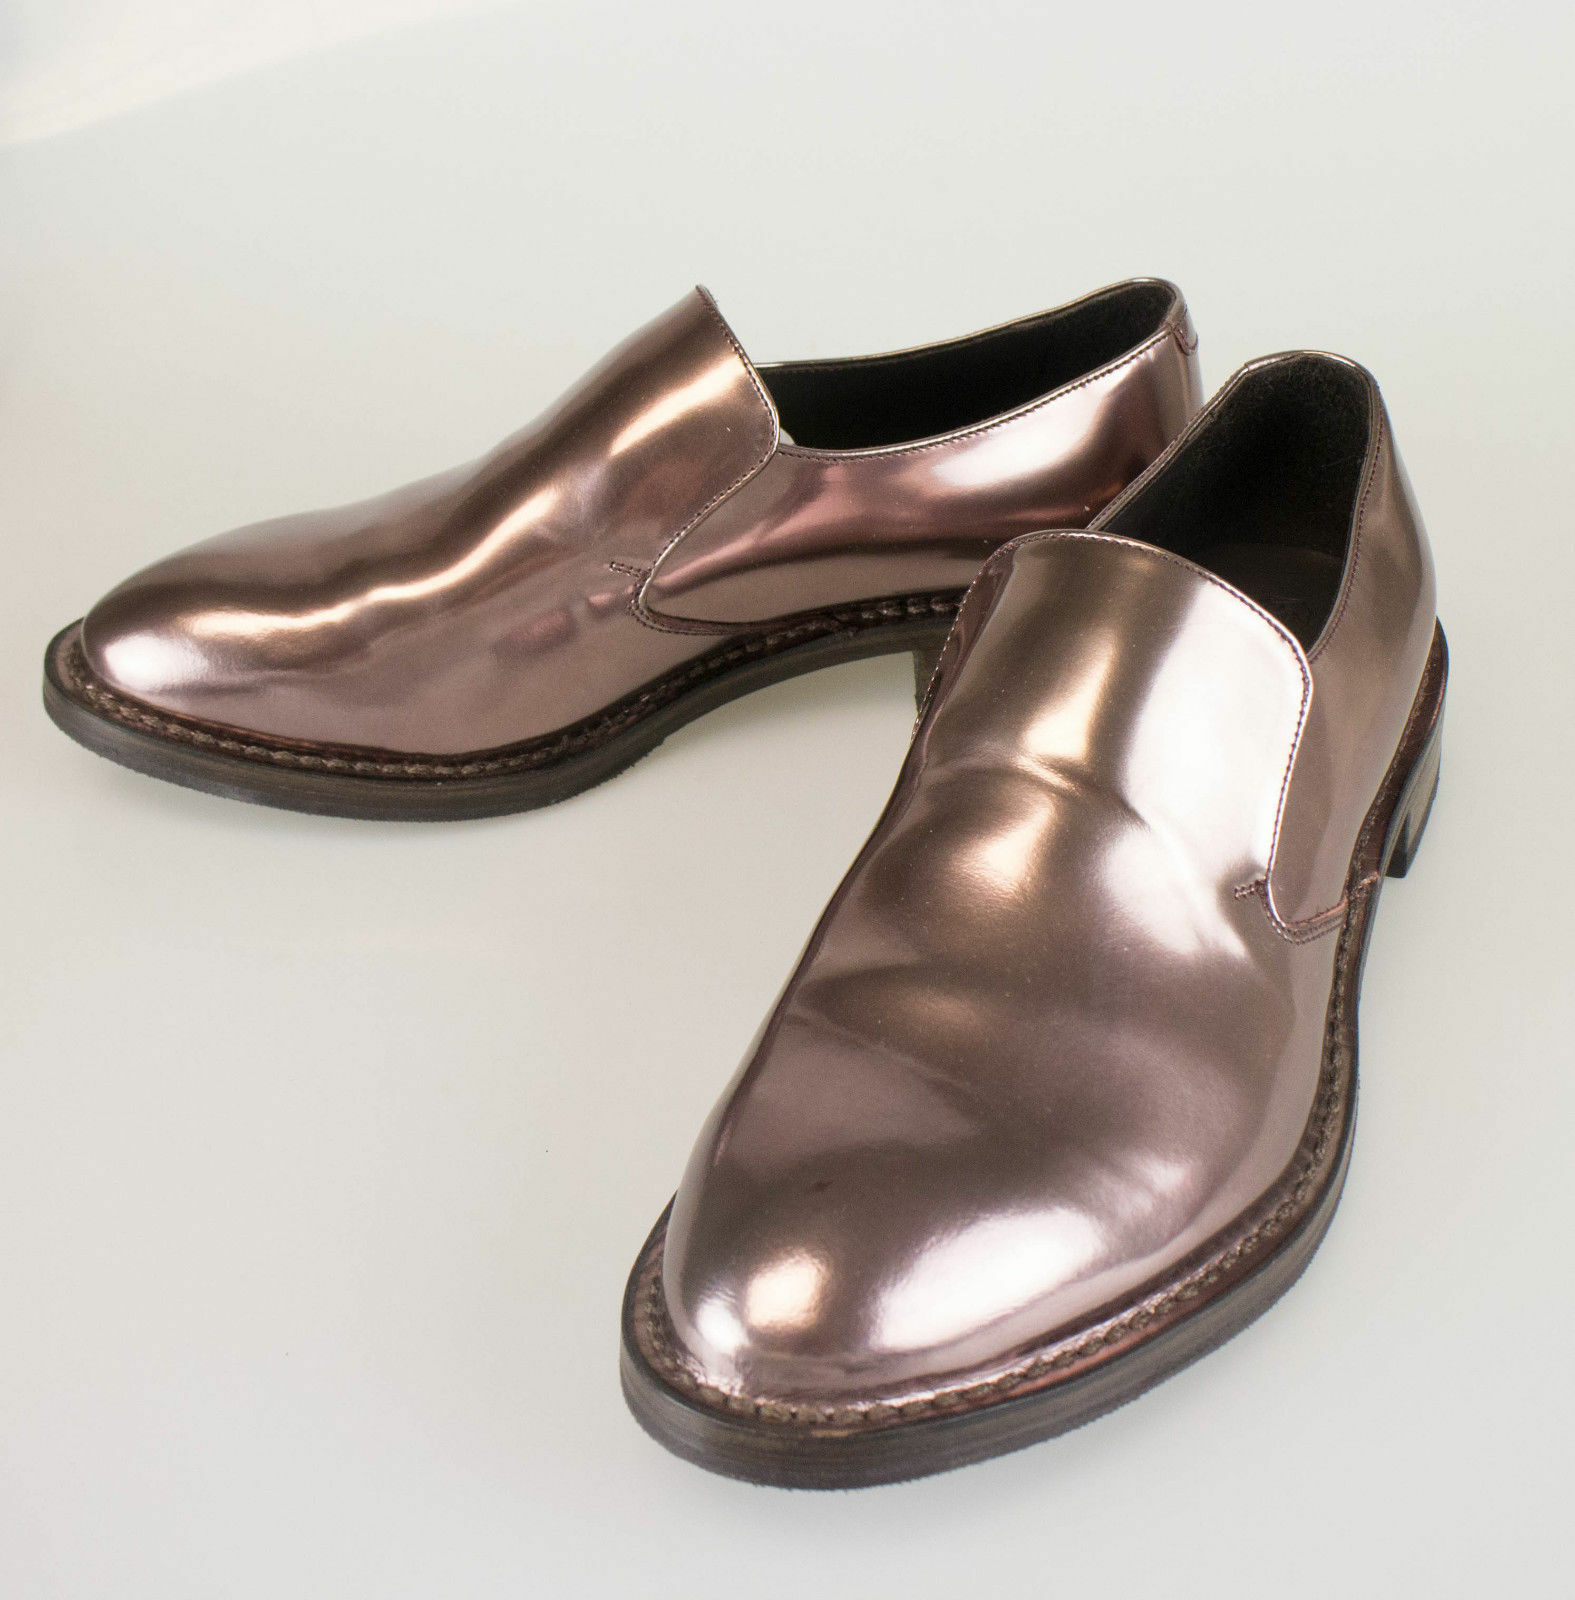 New. BRUNELLO CUCINELLI Brown Patent Leather Loafers Shoes Size 7.5/37.5  1170